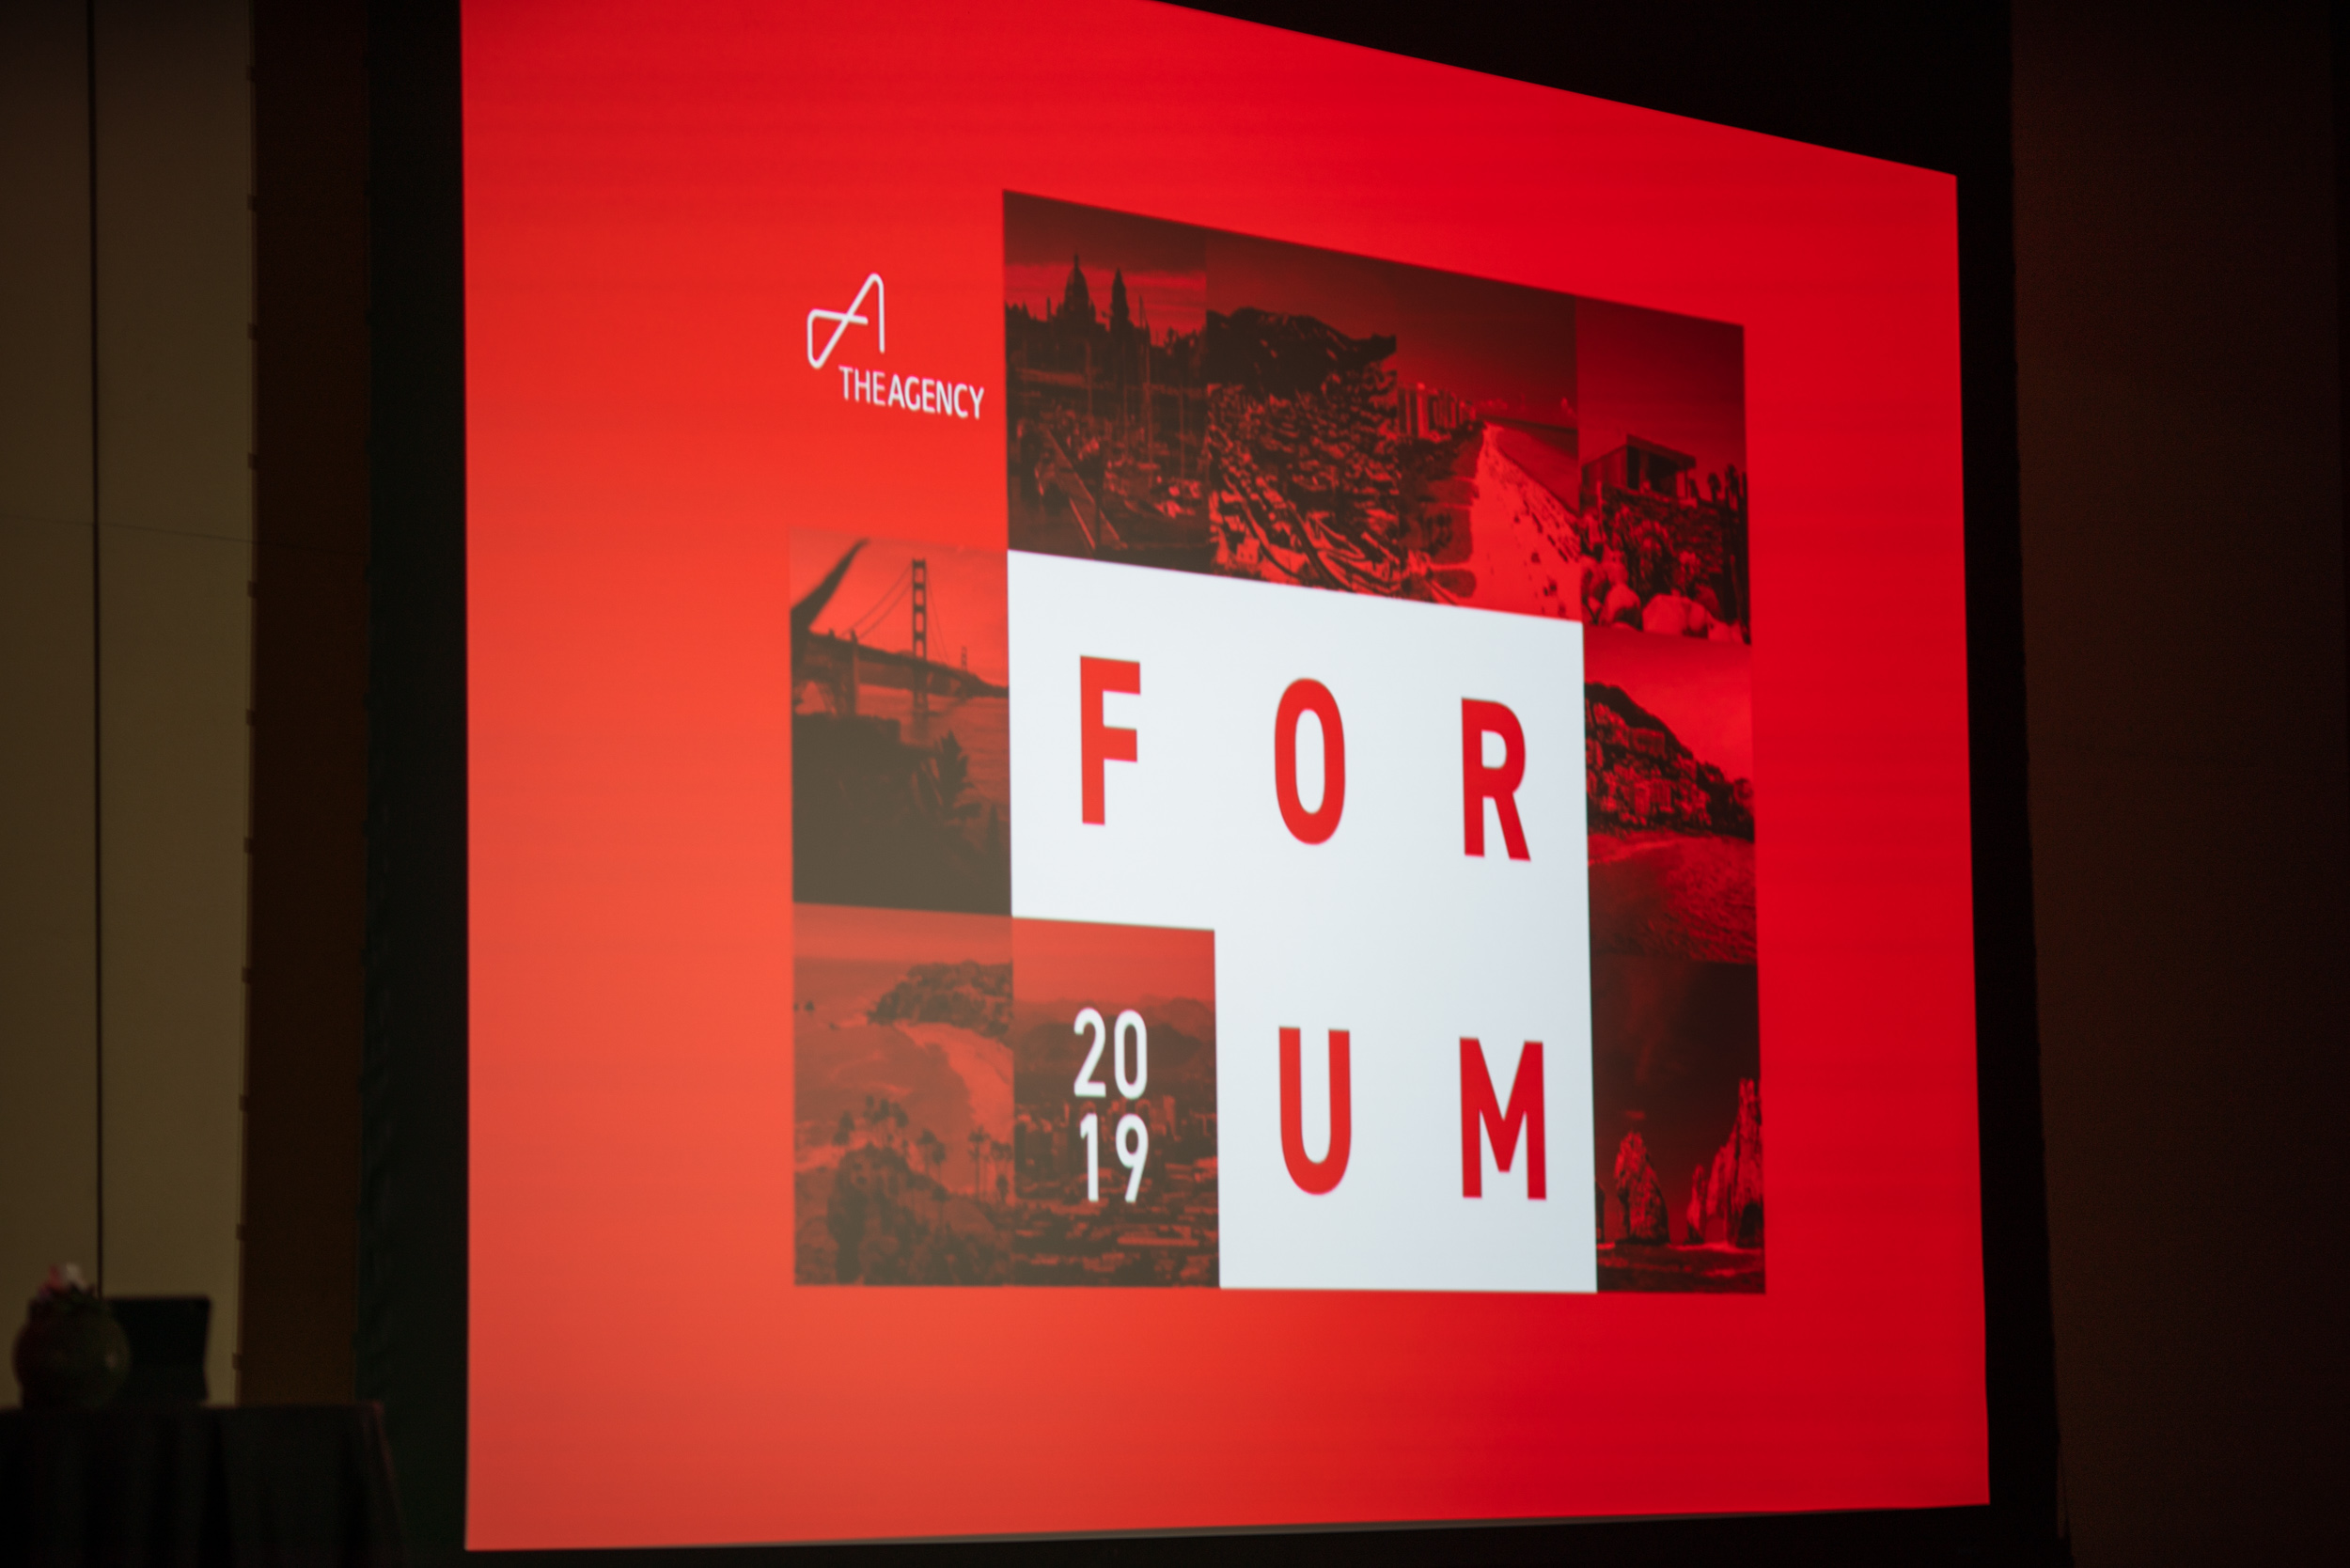 Forum 2019 – The Agency